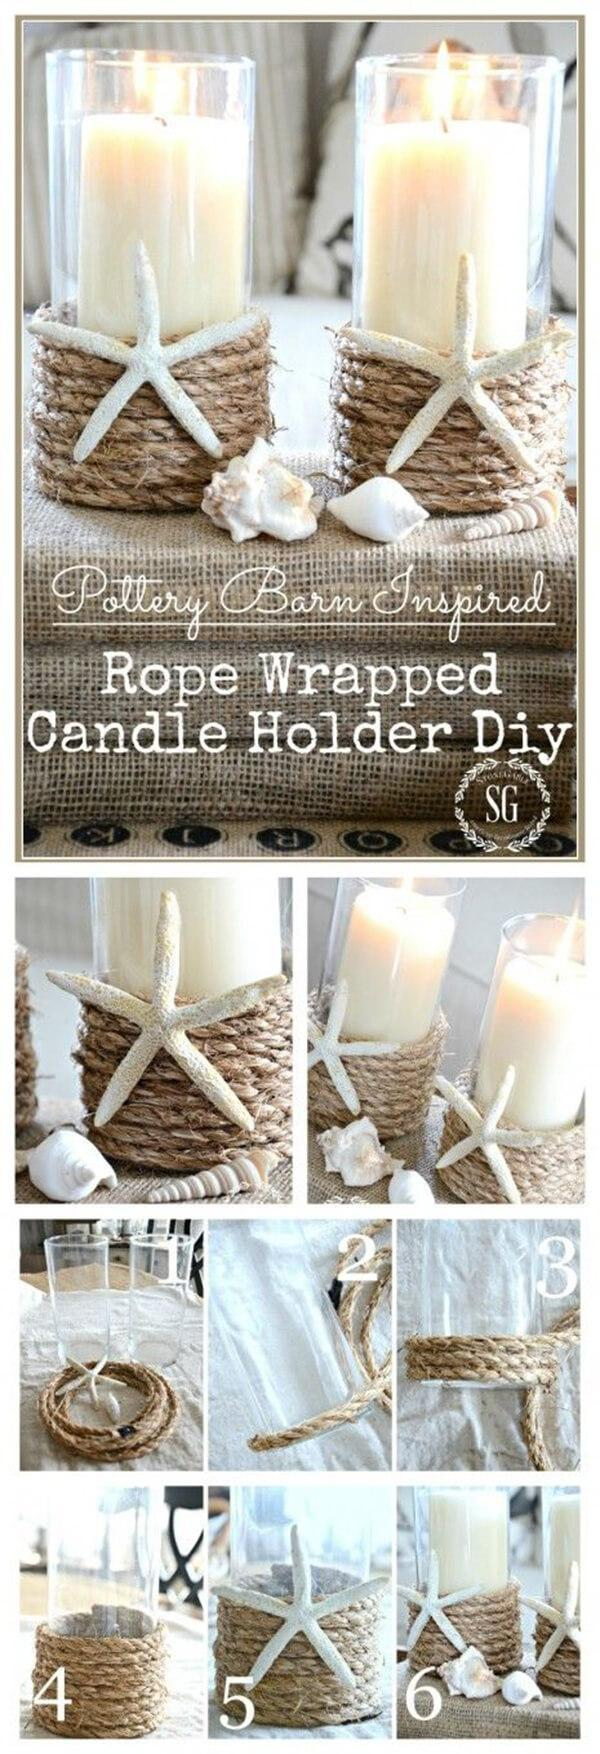 33 DIY Candleholders with Starfish and Rope